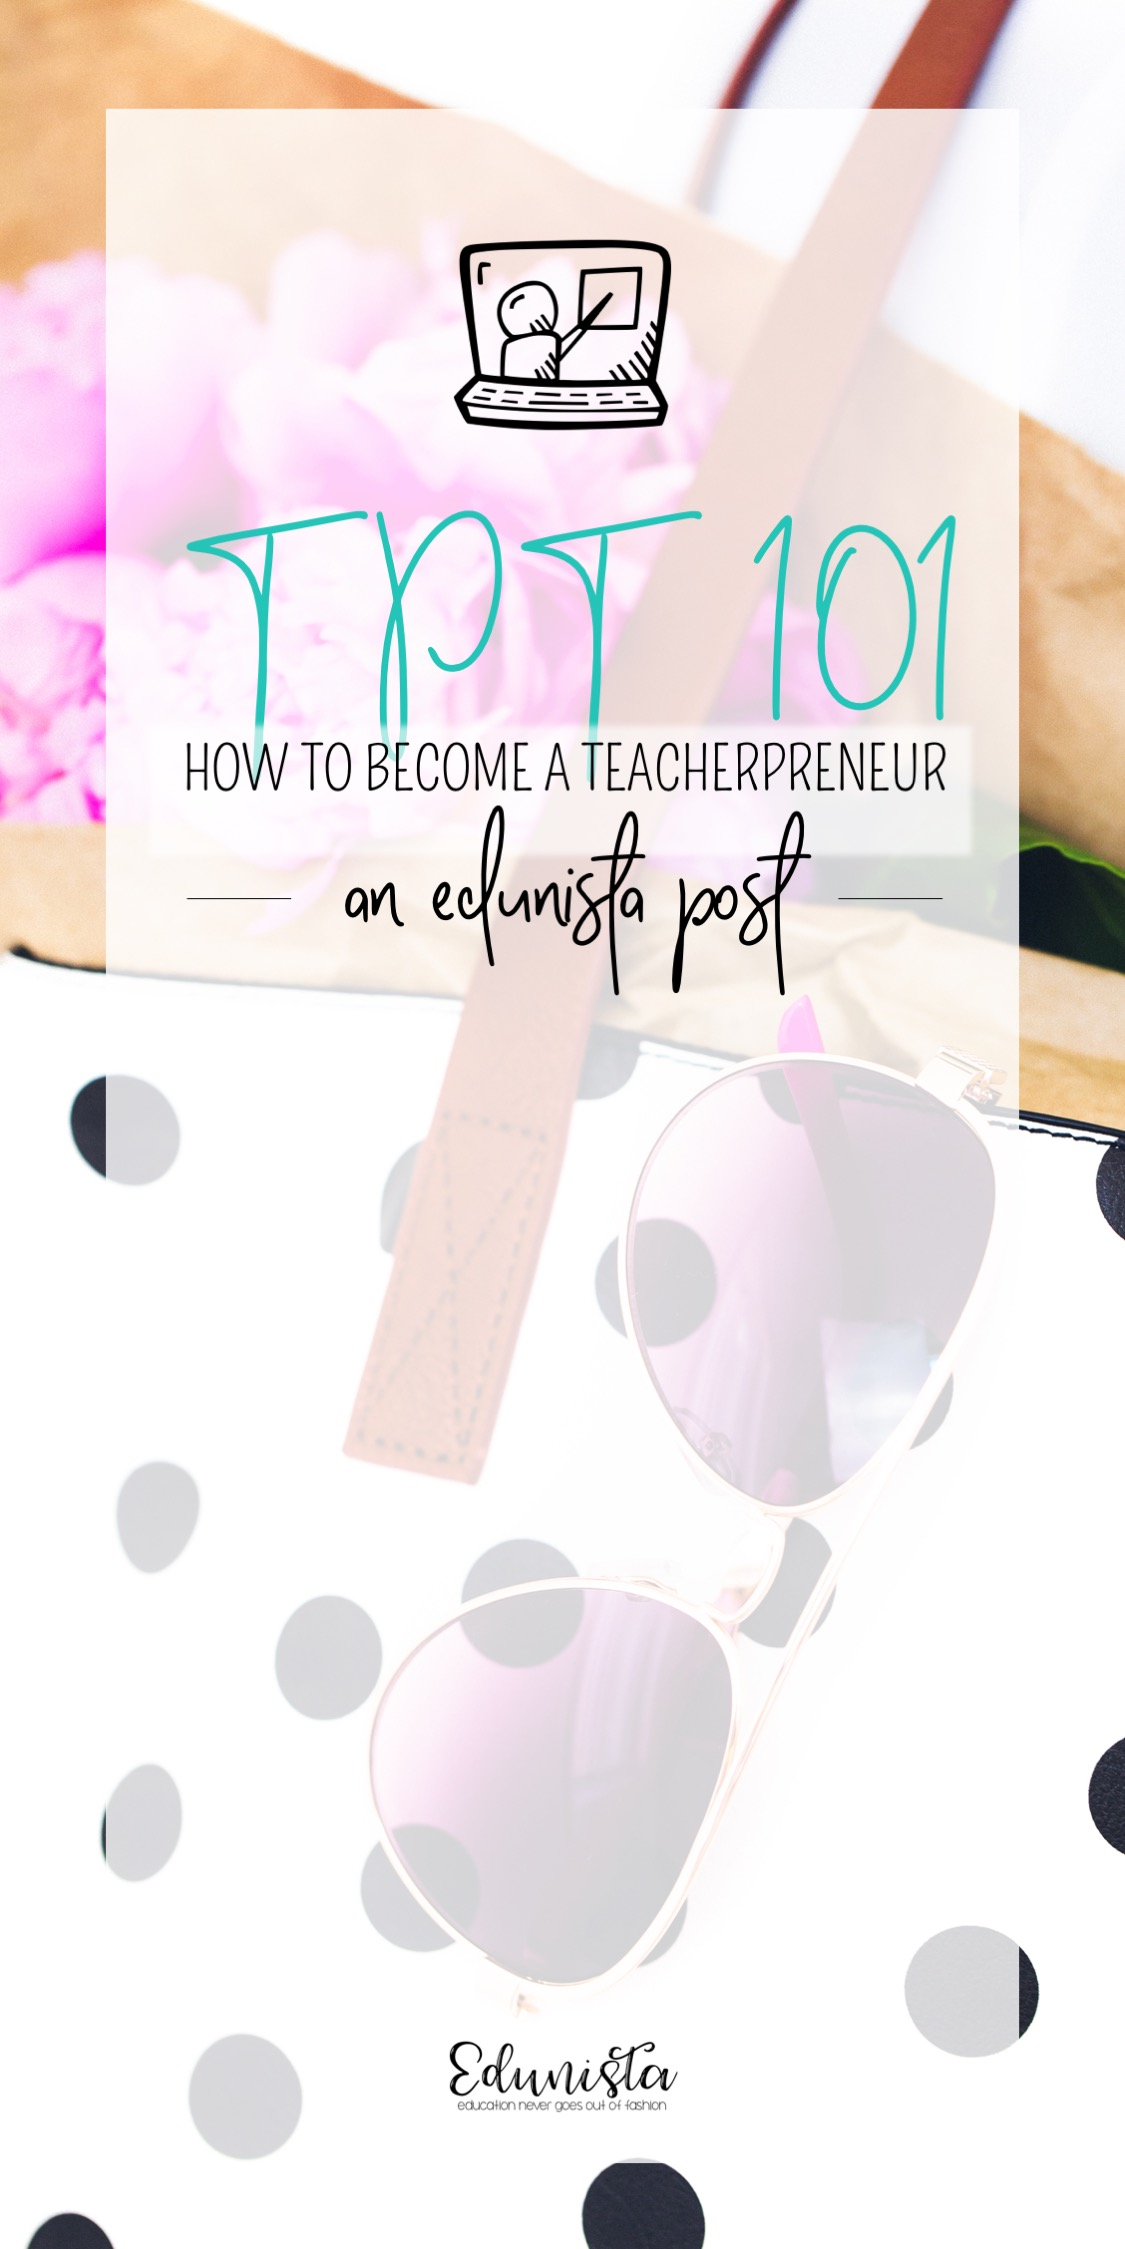 I've been wanting to start a teacher blog & TpT store forever but never knew how. This blog series is so amazing! It walks you through everything step by step from setting up a Teachers Pay Teachers account to marketing on Instagram and so much more! Definitely, a must read if you want to make money outside of the classroom!